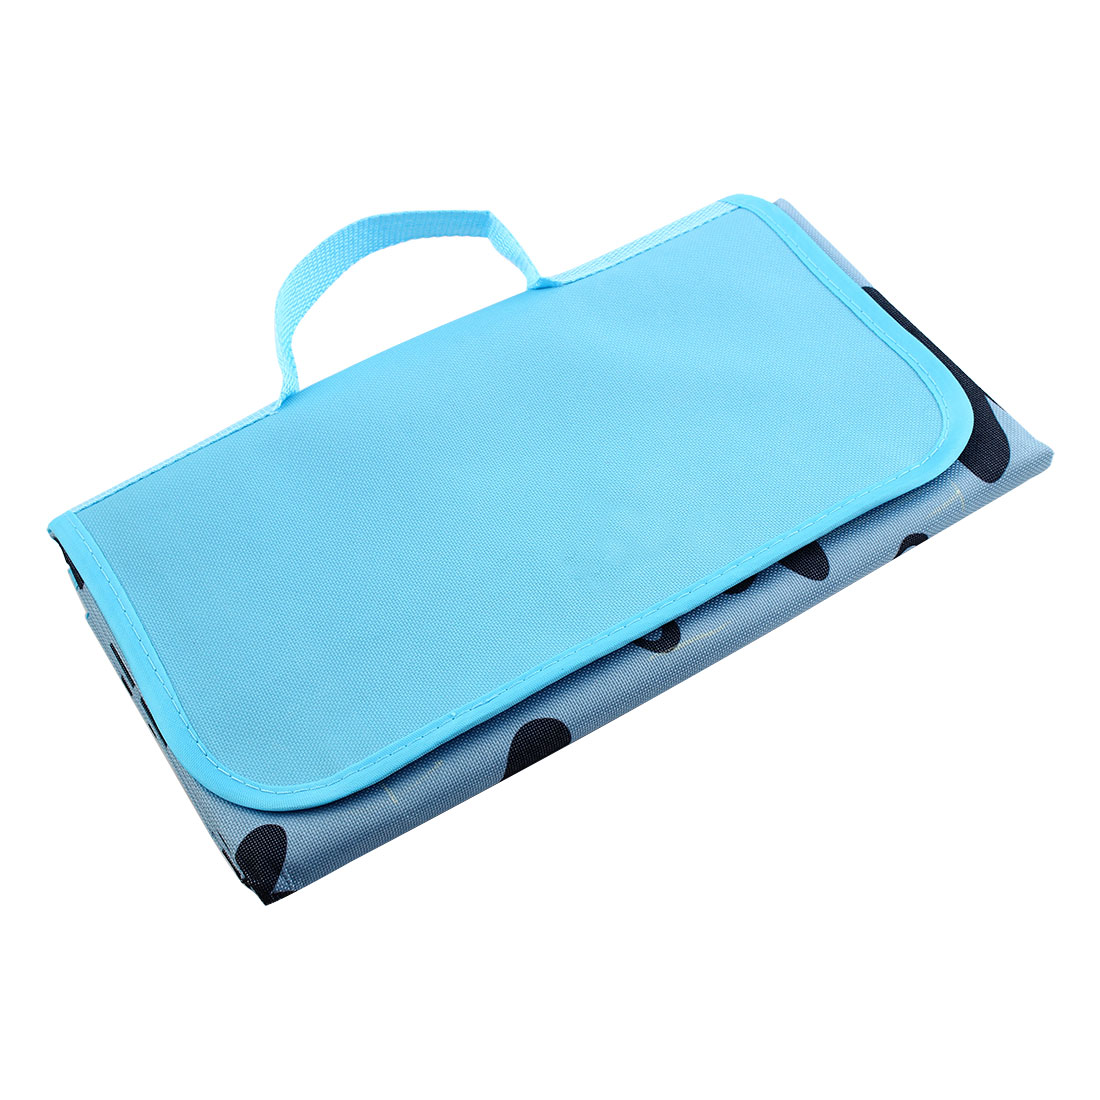 Travel Outdoor Water Resistant Pad Foldable Picnic Blanket Portable Camping Mat Blue